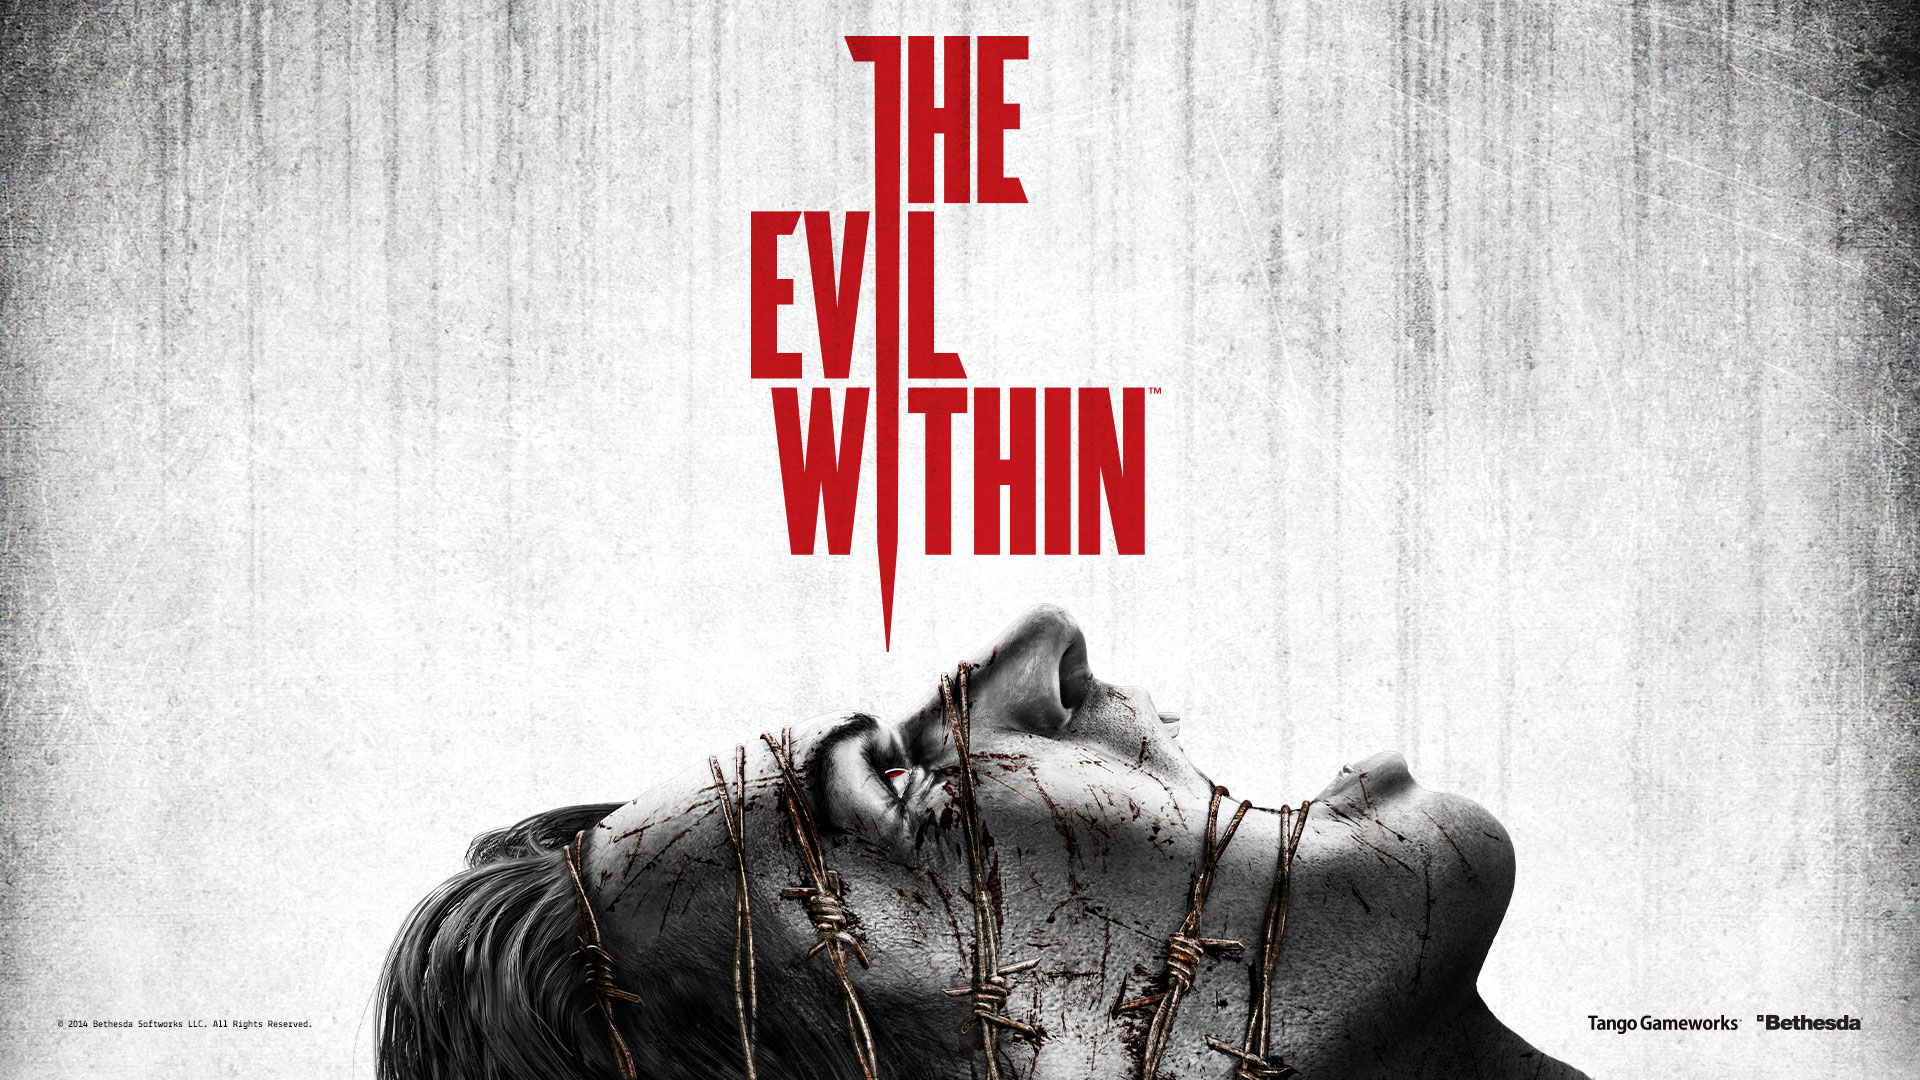 The Evil Within Game Wallpapers | HD Wallpapers